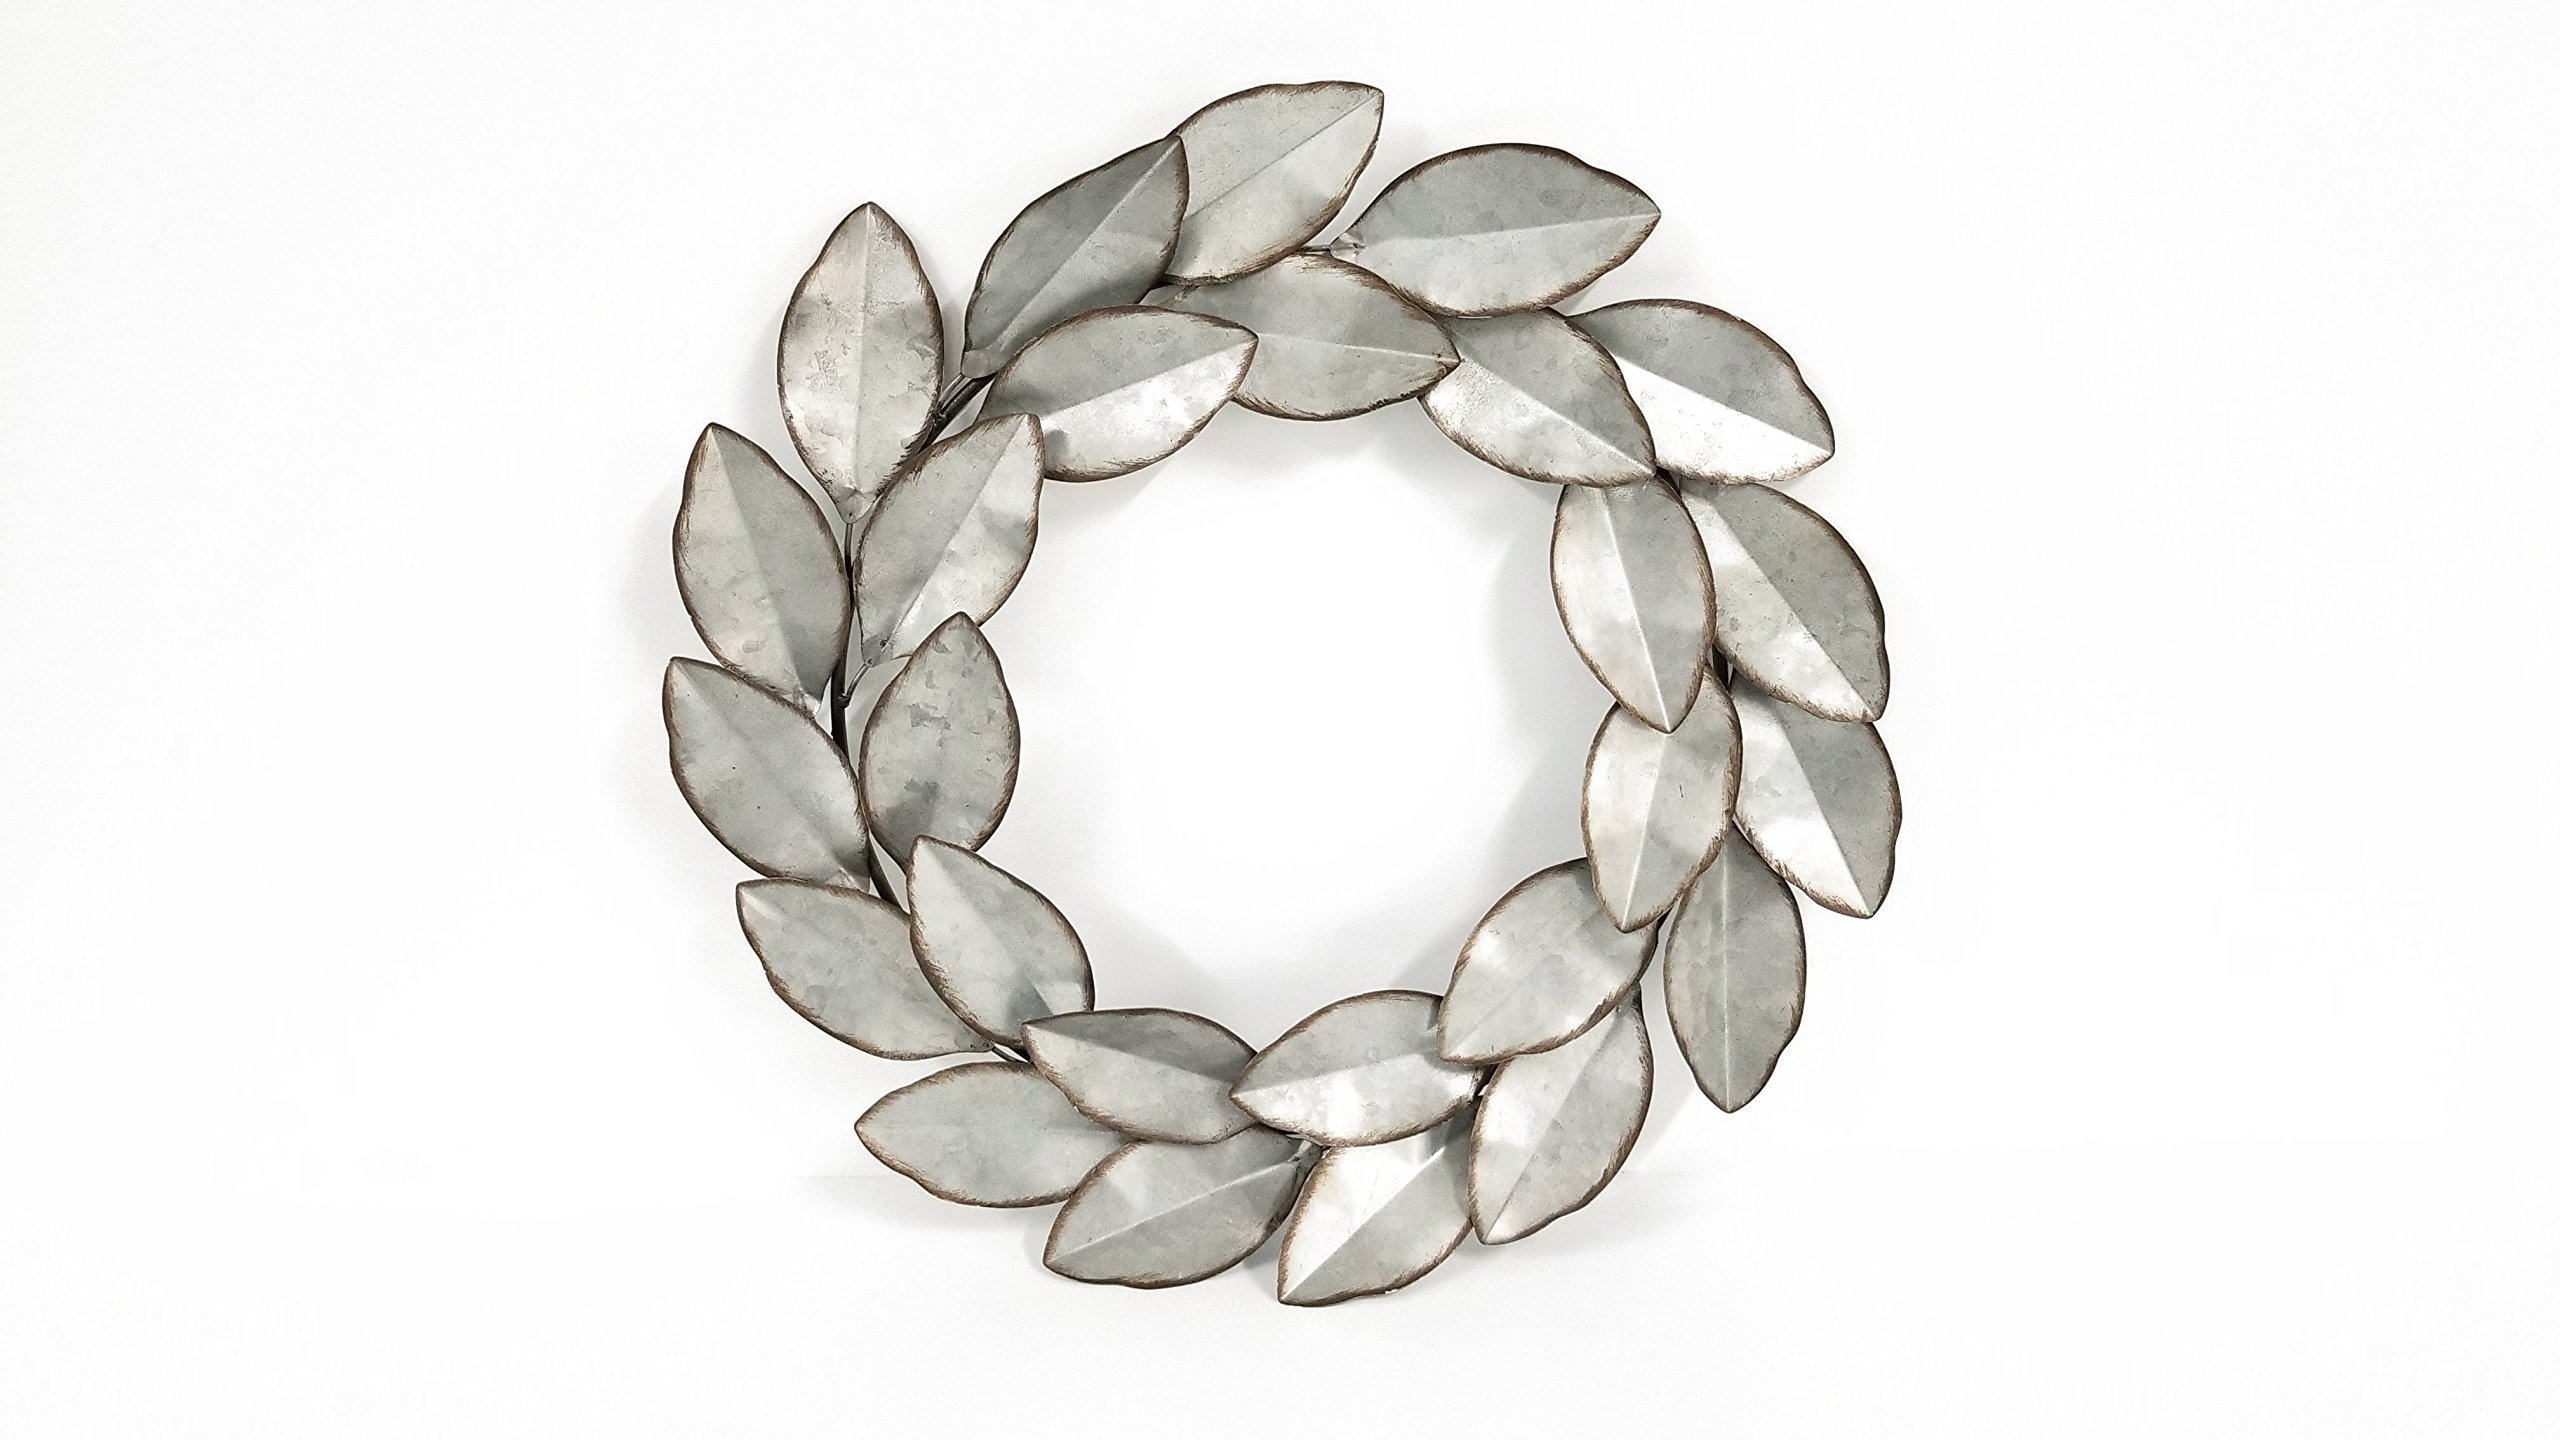 Everydecor-Leaf-Wreath-Metal-Wall-Decor